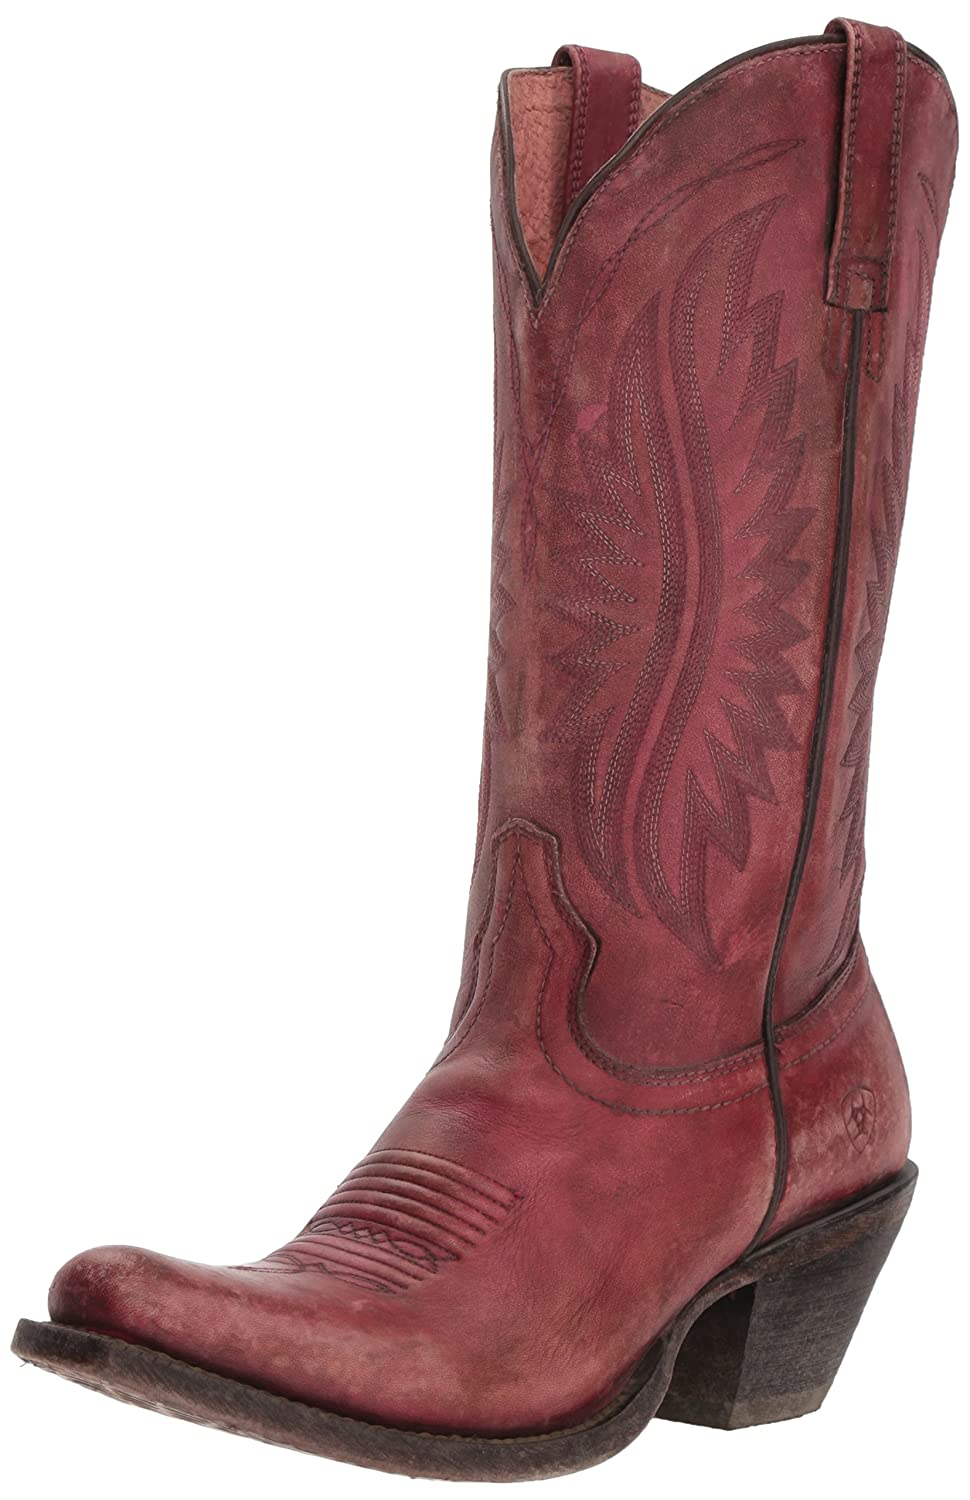 Ariat Women's Circuit Salem Western Boot B076MD5J9J 7 M US|Naturally Distressed Pink